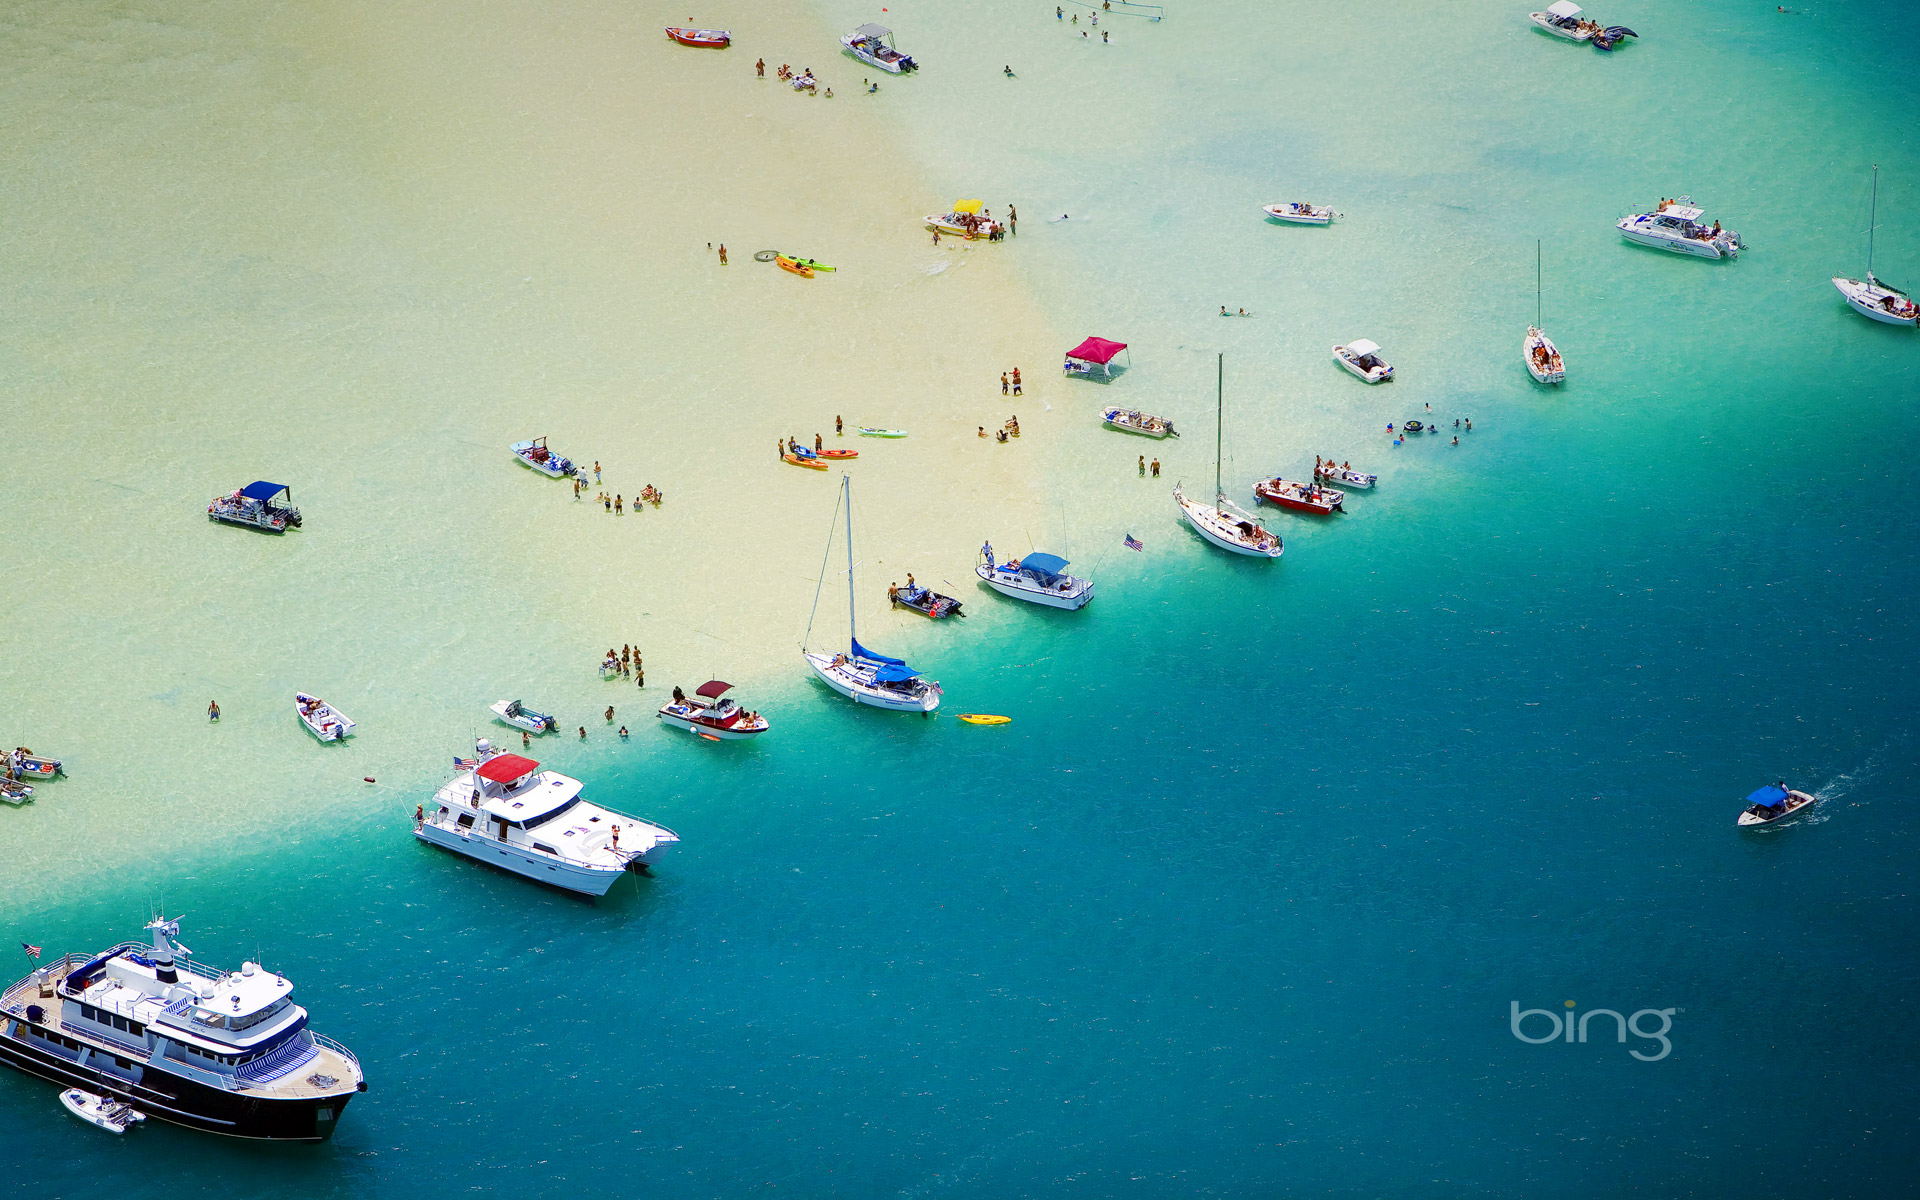 Bing wallpapers 22 28 January 2013   HQ Wallpapers   HQ Wallpapers 1920x1200